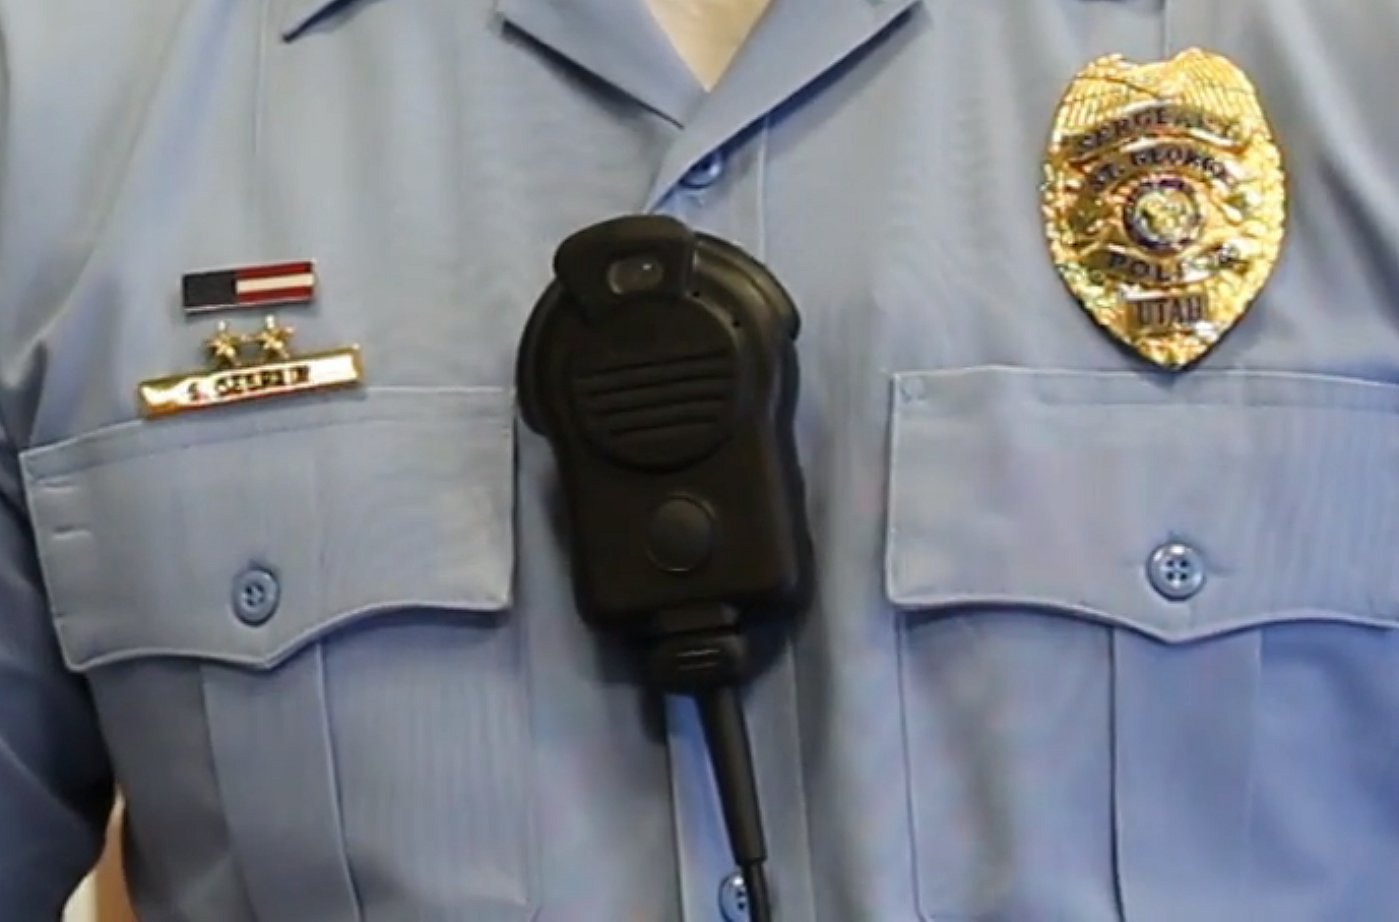 One of the body cameras tested by the St. George Police Department in 2015, St. George, Utah, May 16, 2015 | Photo by Mori Kessler, St. George News